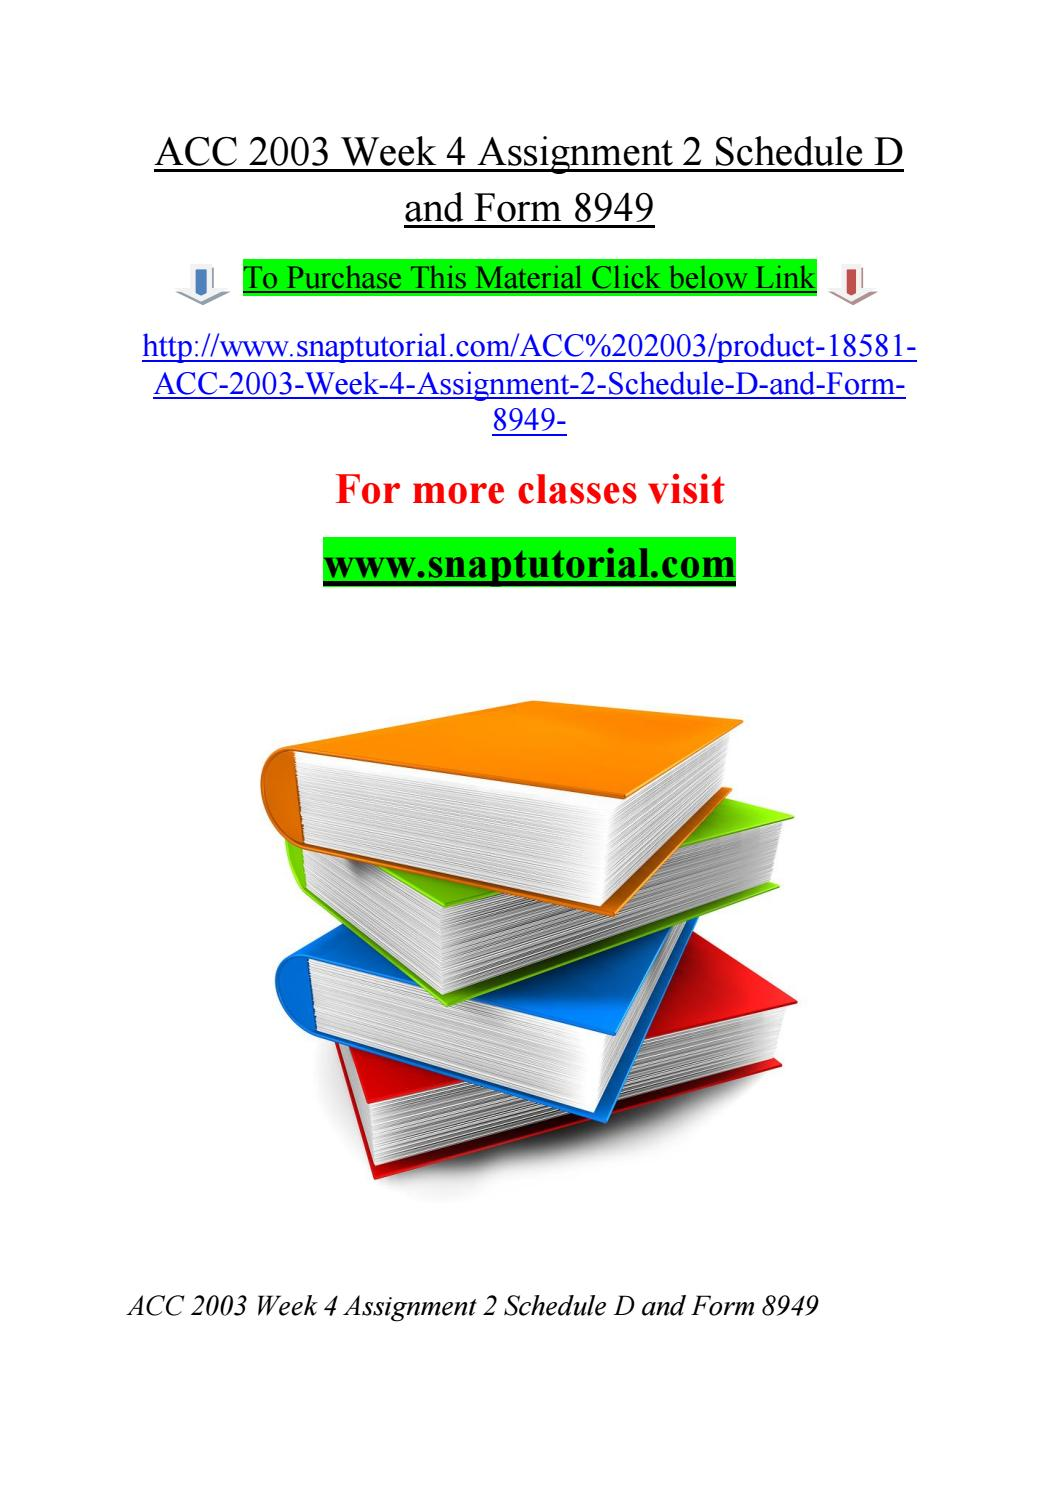 Acc 2003 week 4 assignment 2 schedule d and form 8949 by